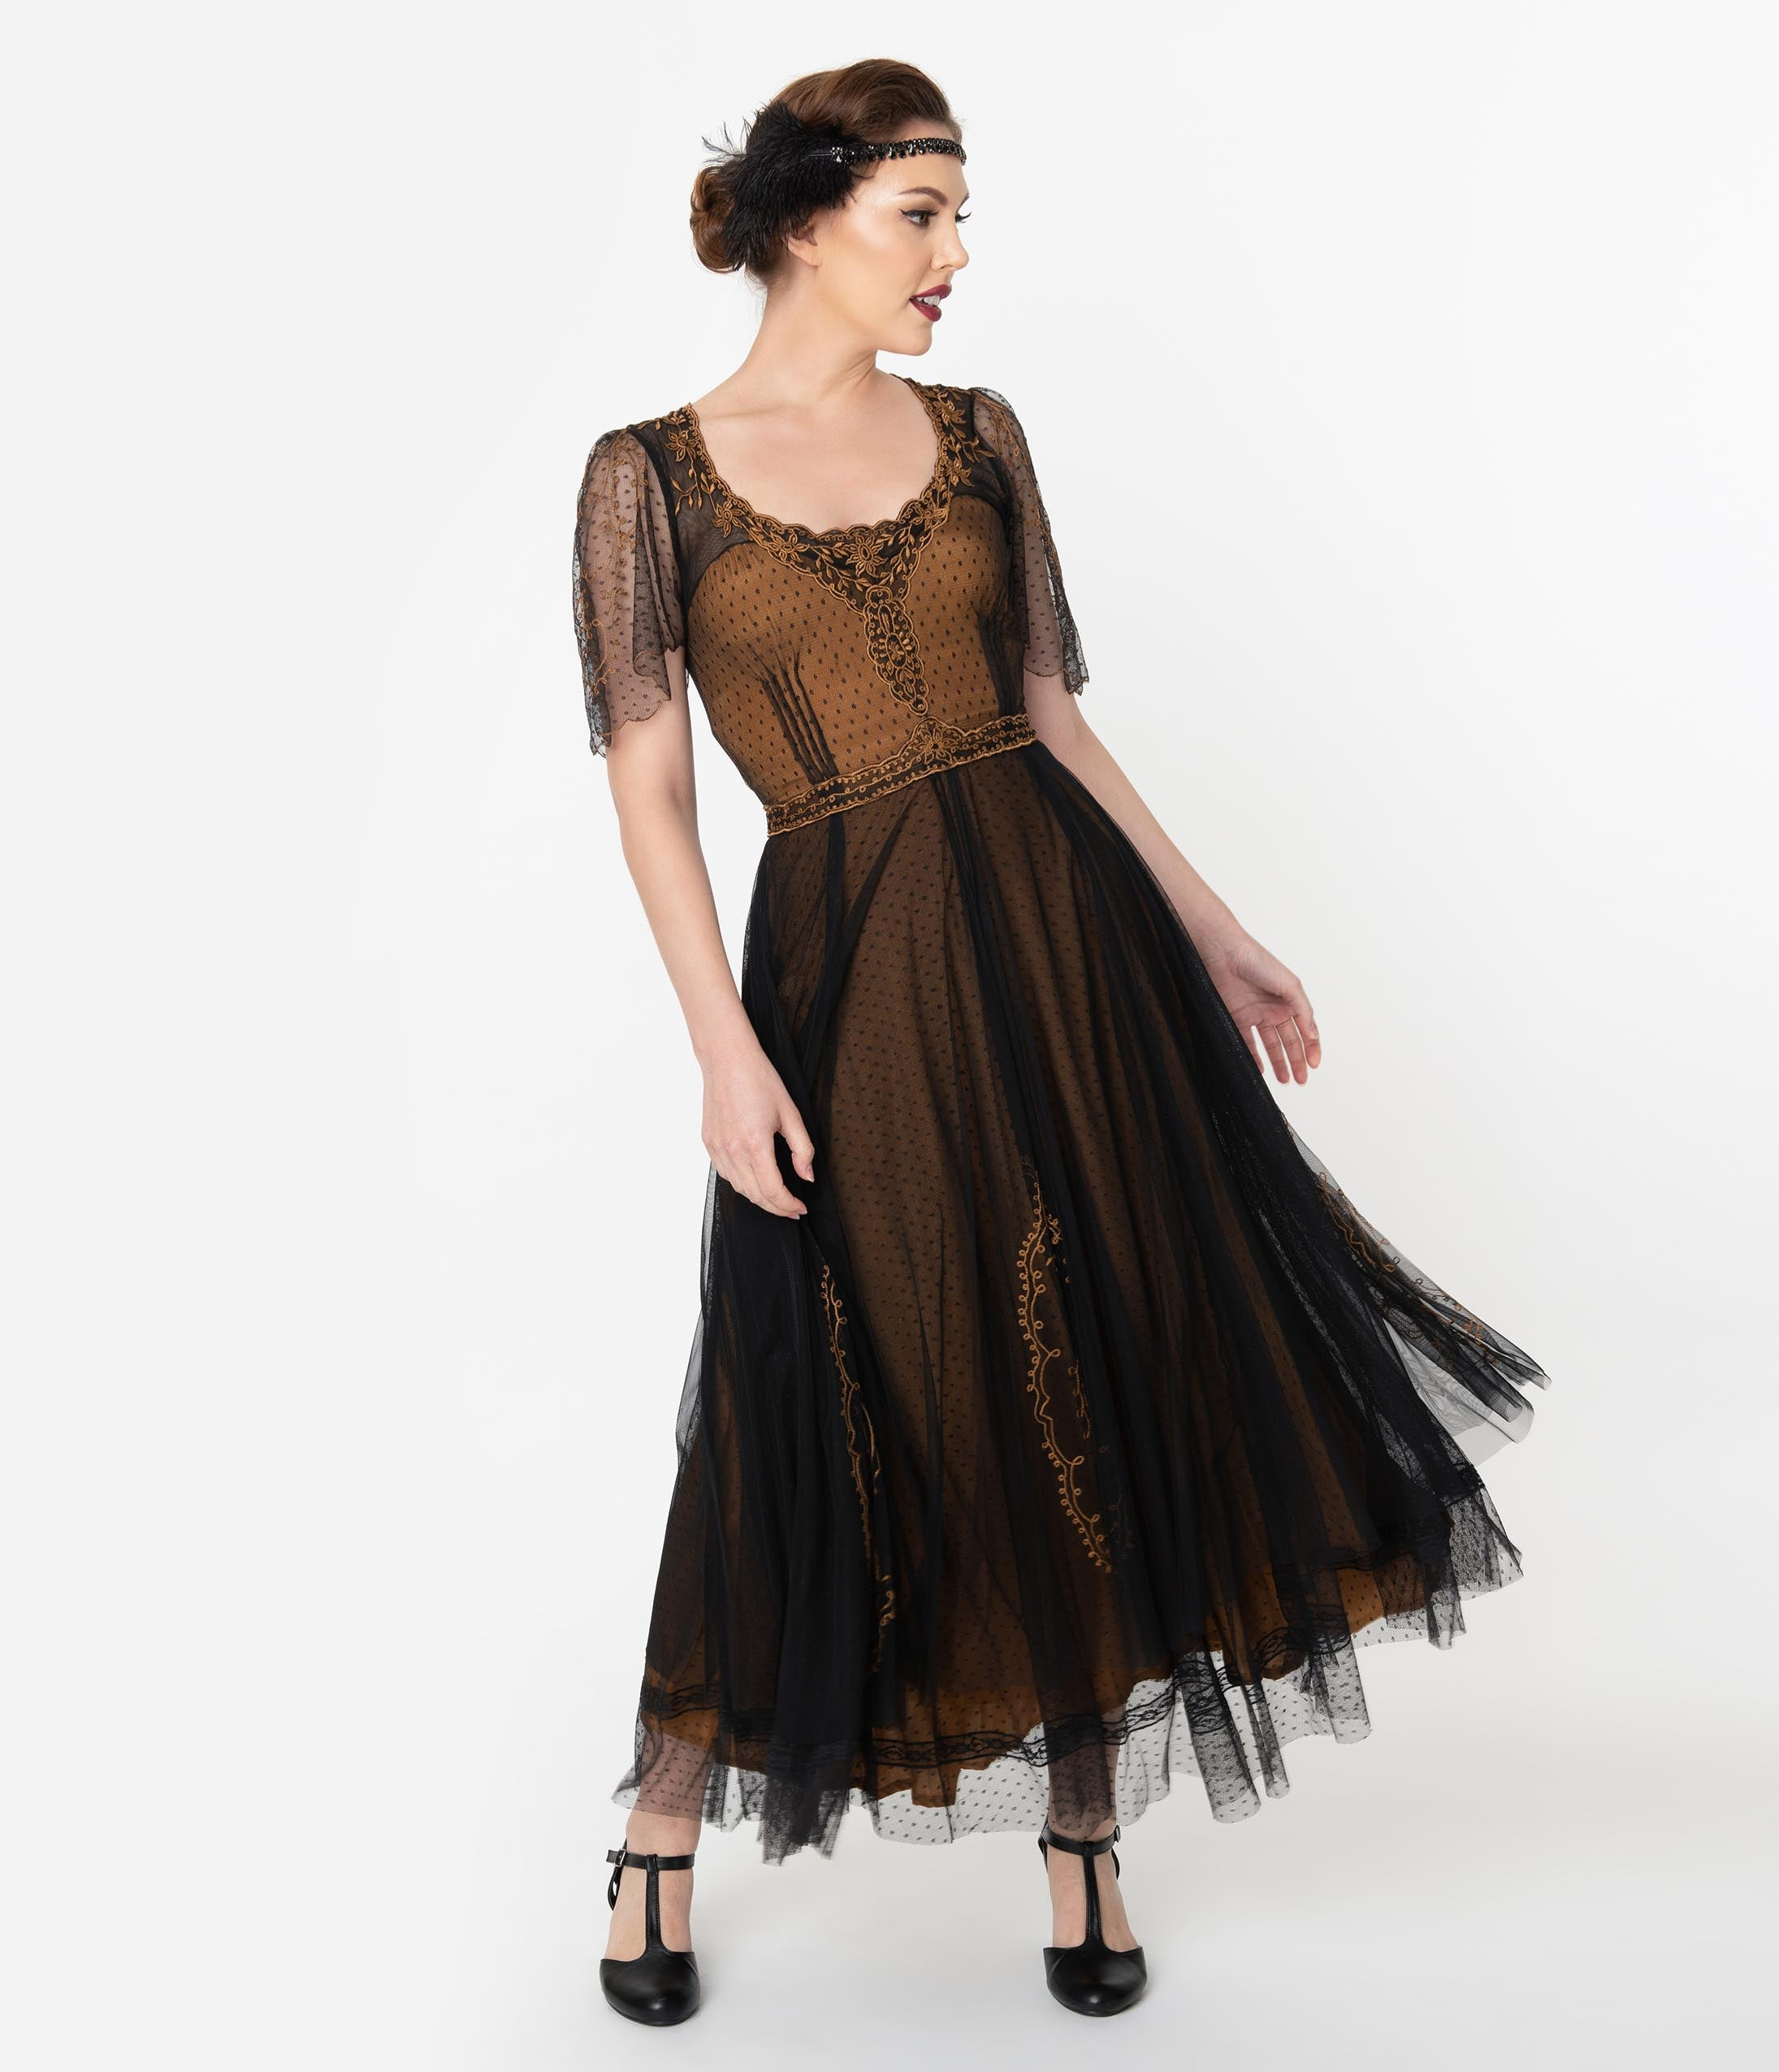 1940s Formal Dresses, Evening Gowns History Vintage Style Black  Gold Embroidered Mesh Edwardian Gown $299.00 AT vintagedancer.com